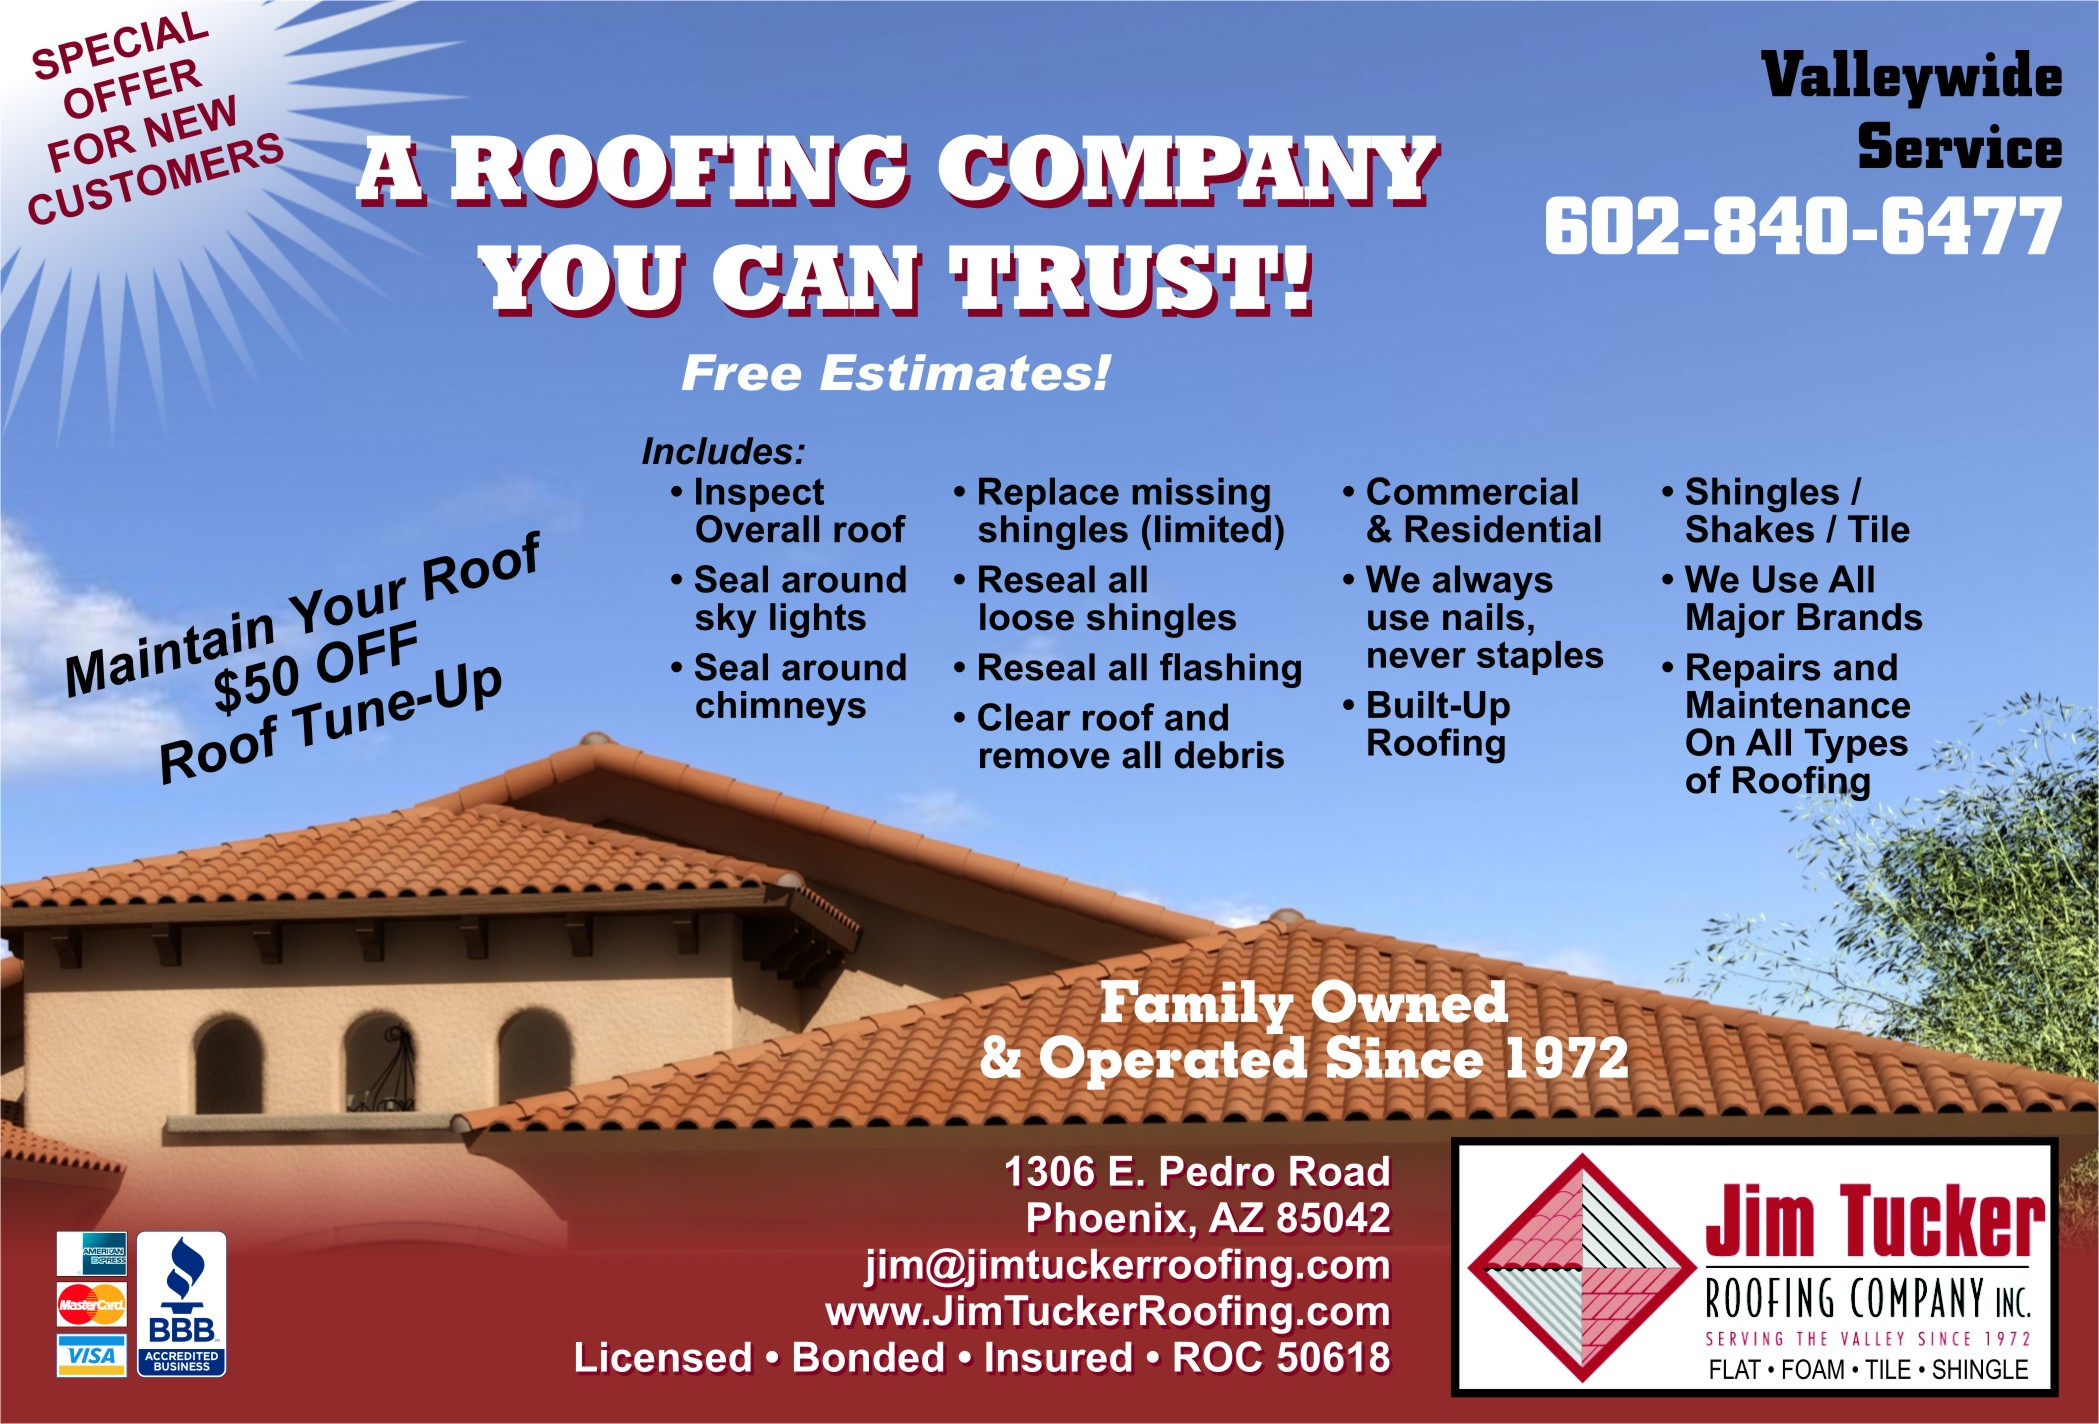 Top Roofing Contractors In Phoenix, AZ